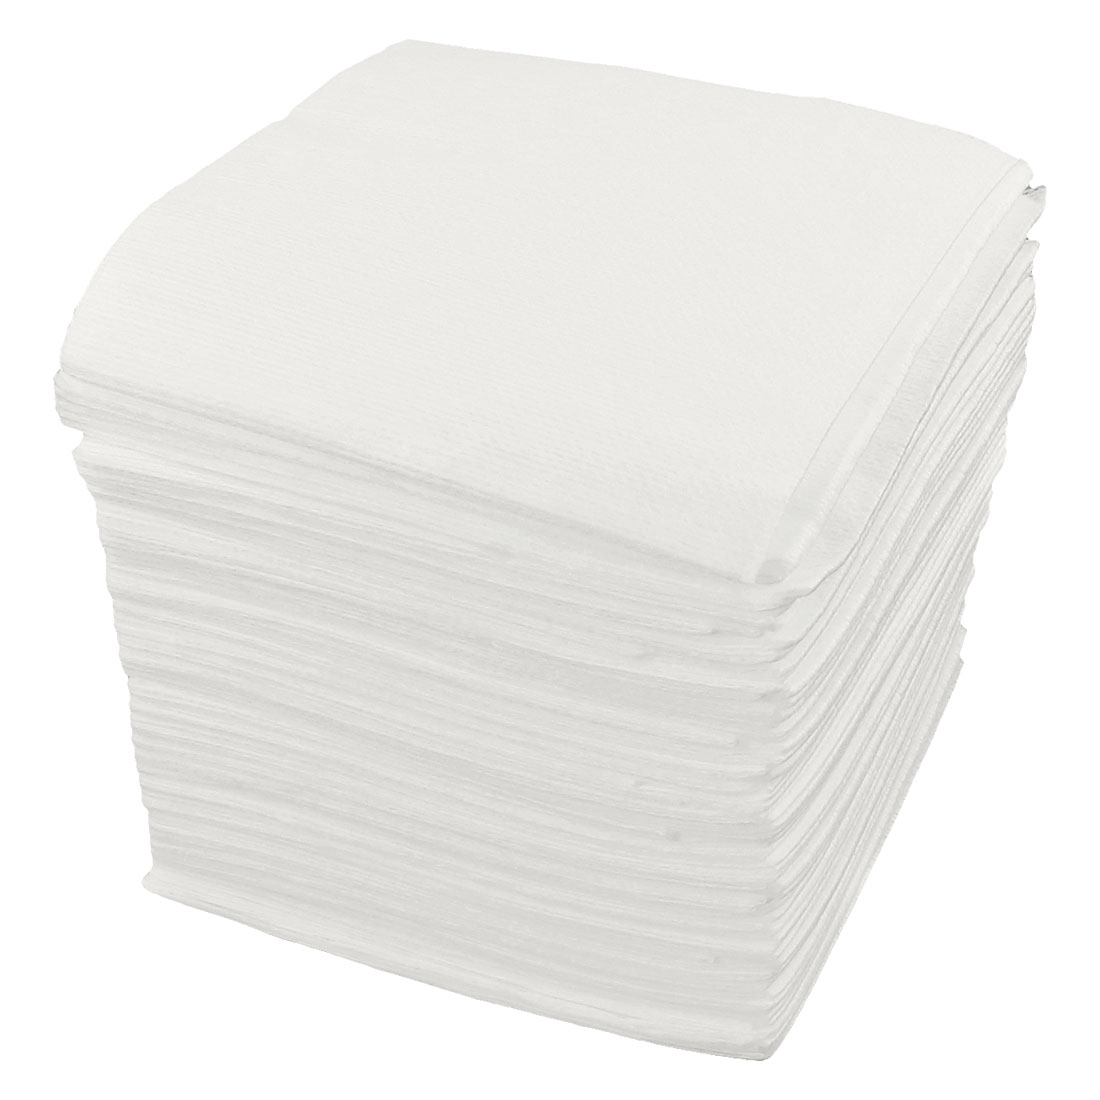 "80 Pcs Lab Dustless 1"" x 1"" Cleanroom Wiper Cloth Cleaner White"